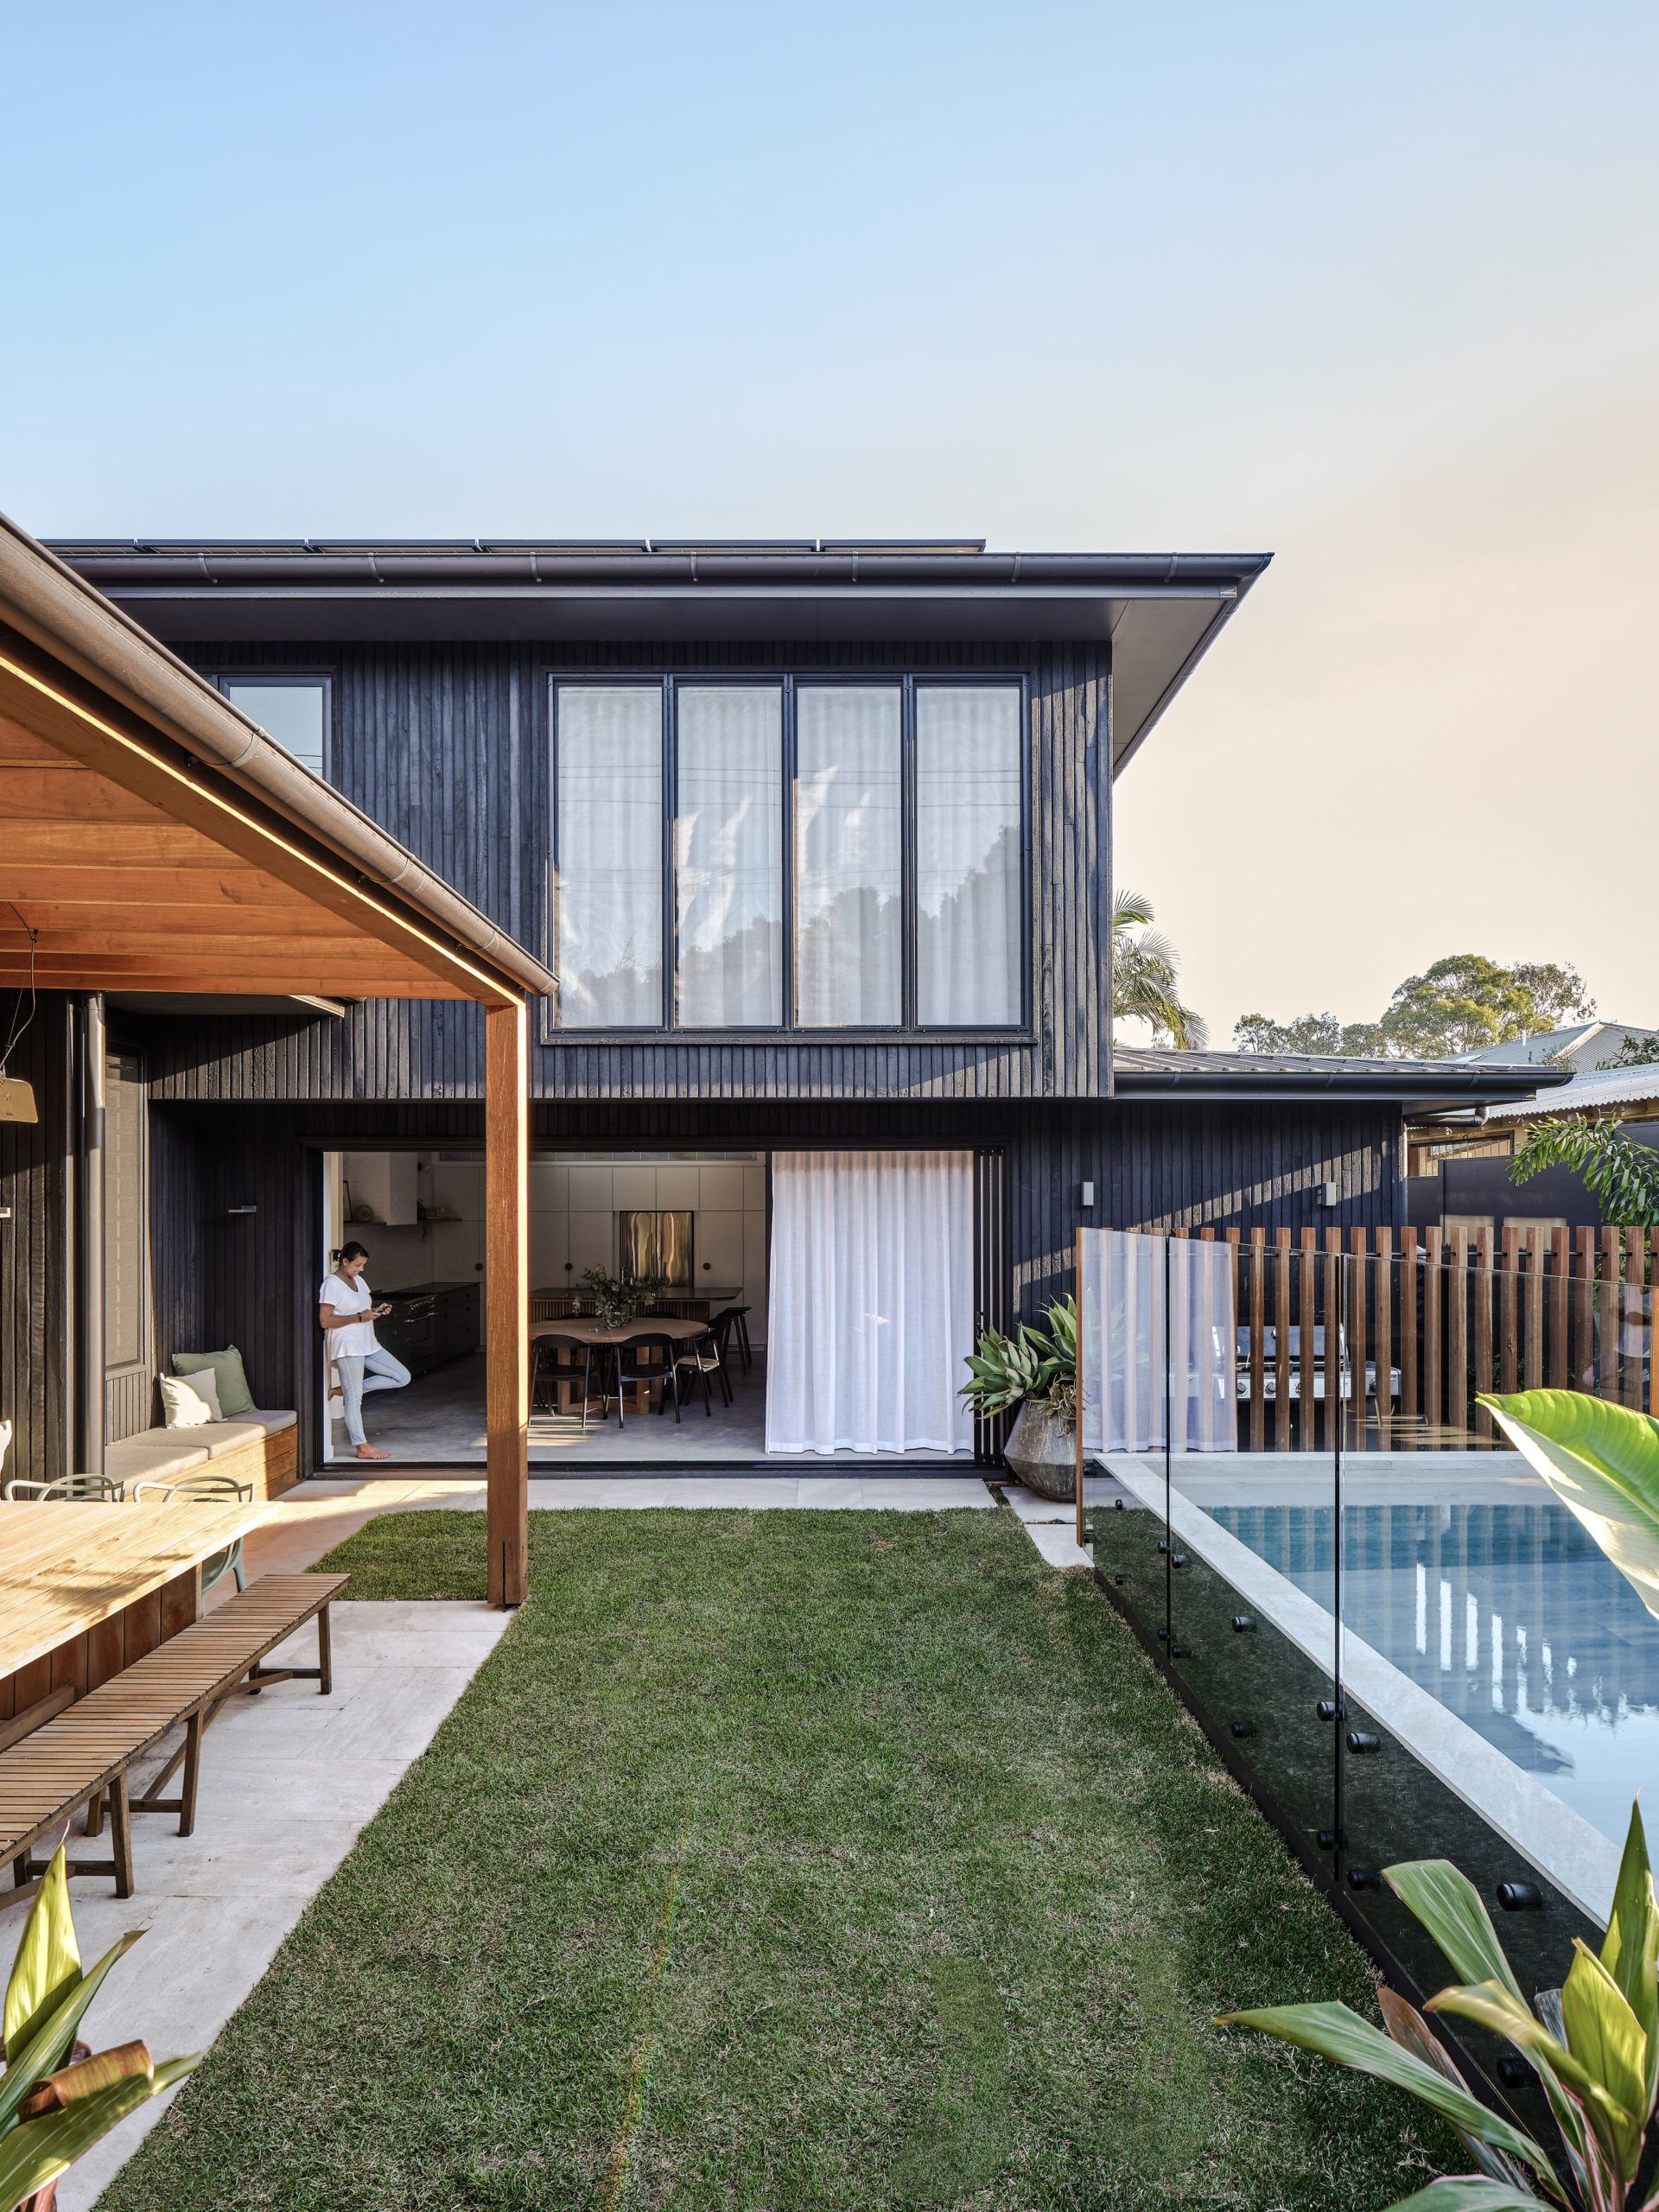 Backyard • Barefoot Bay Villa designed by The Designory • Byron Bay